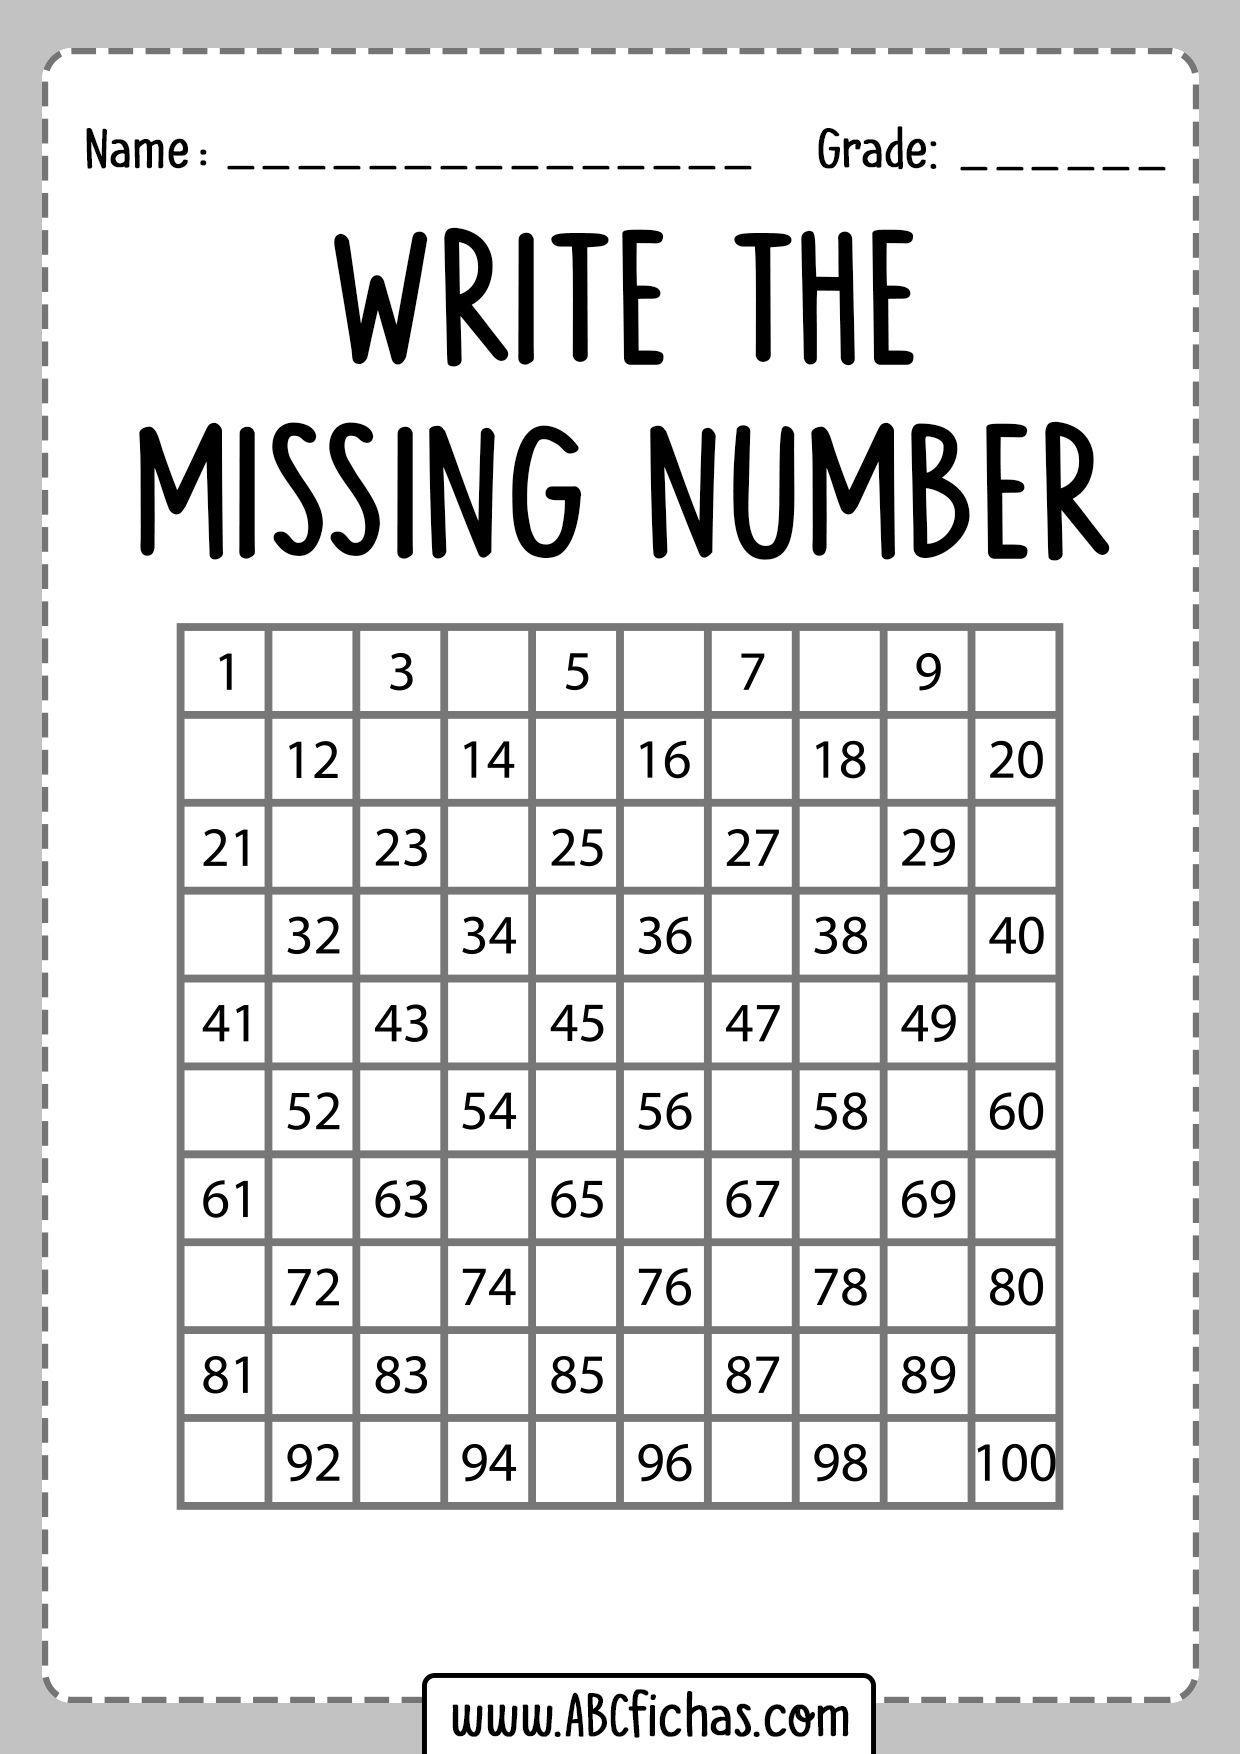 Write The Missing Number Worksheets For First Grade